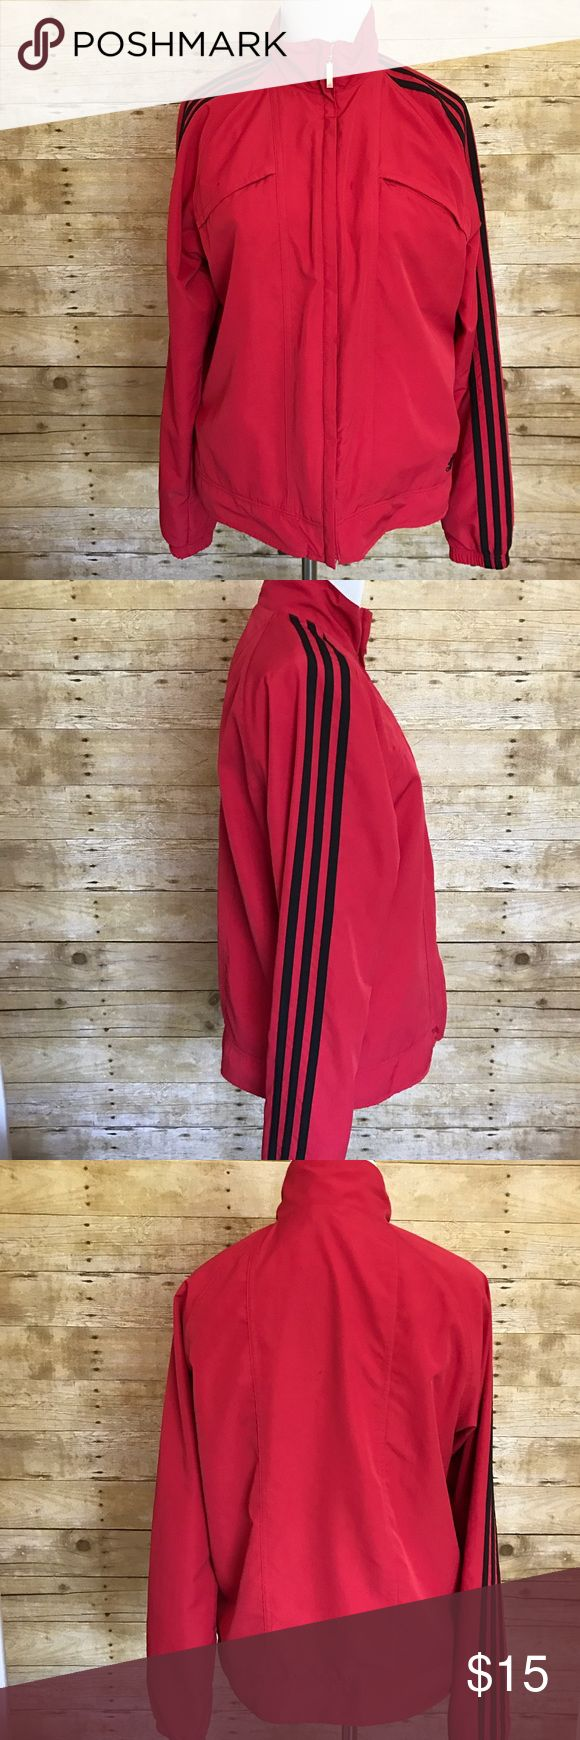 Men's Adidas windbreaker Red size M Nice men's red windbreaker zip up with black stripes on sleeves. Size M. Comes from smoke free home. I ship next business day after payment is received. Please check out my other items! Adidas Jackets & Coats Windbreakers